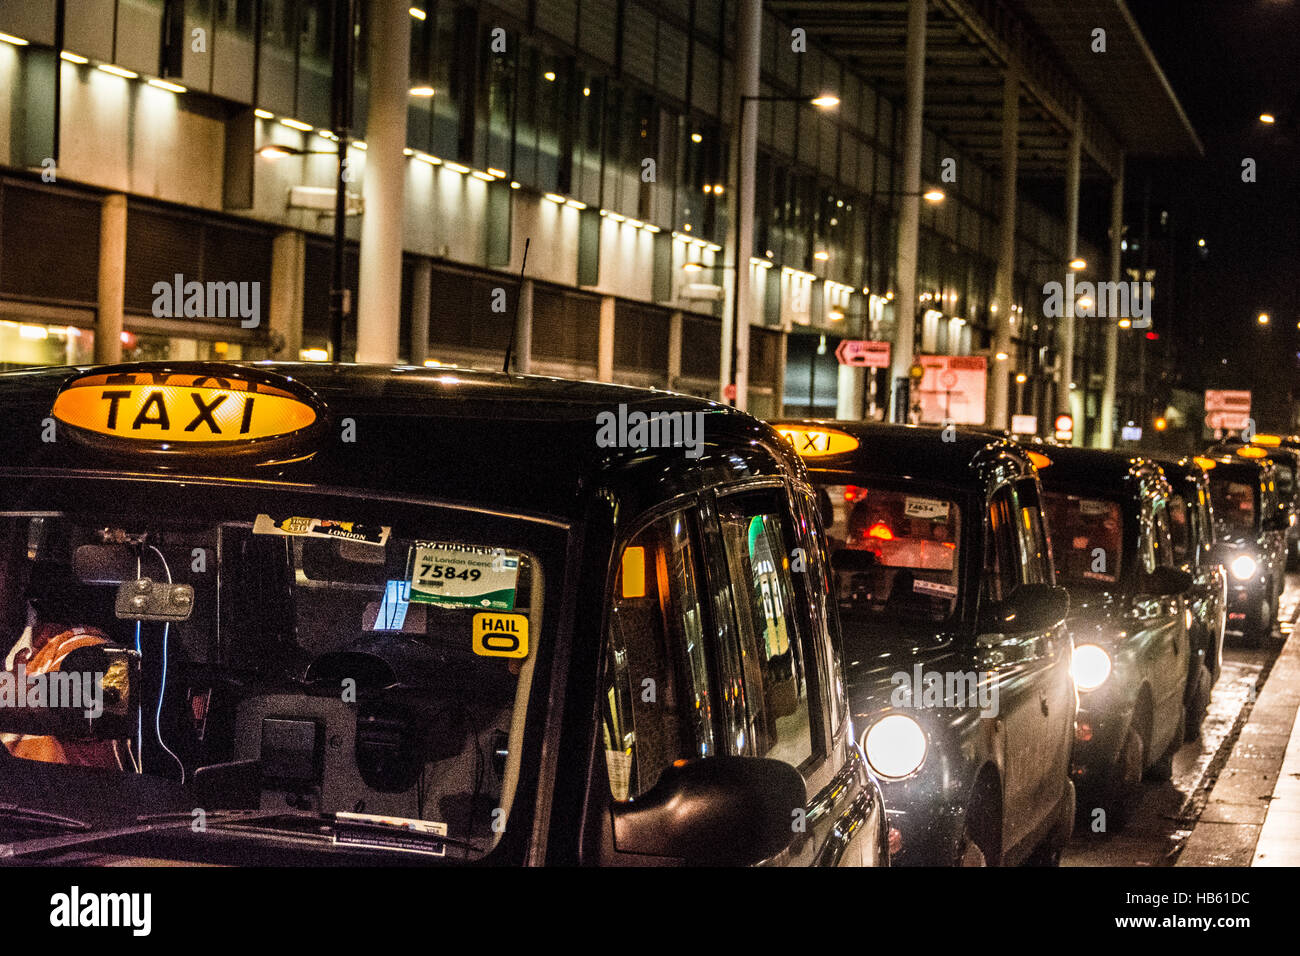 Taxis outside St. Pancras station in London, England, UK Stock Photo